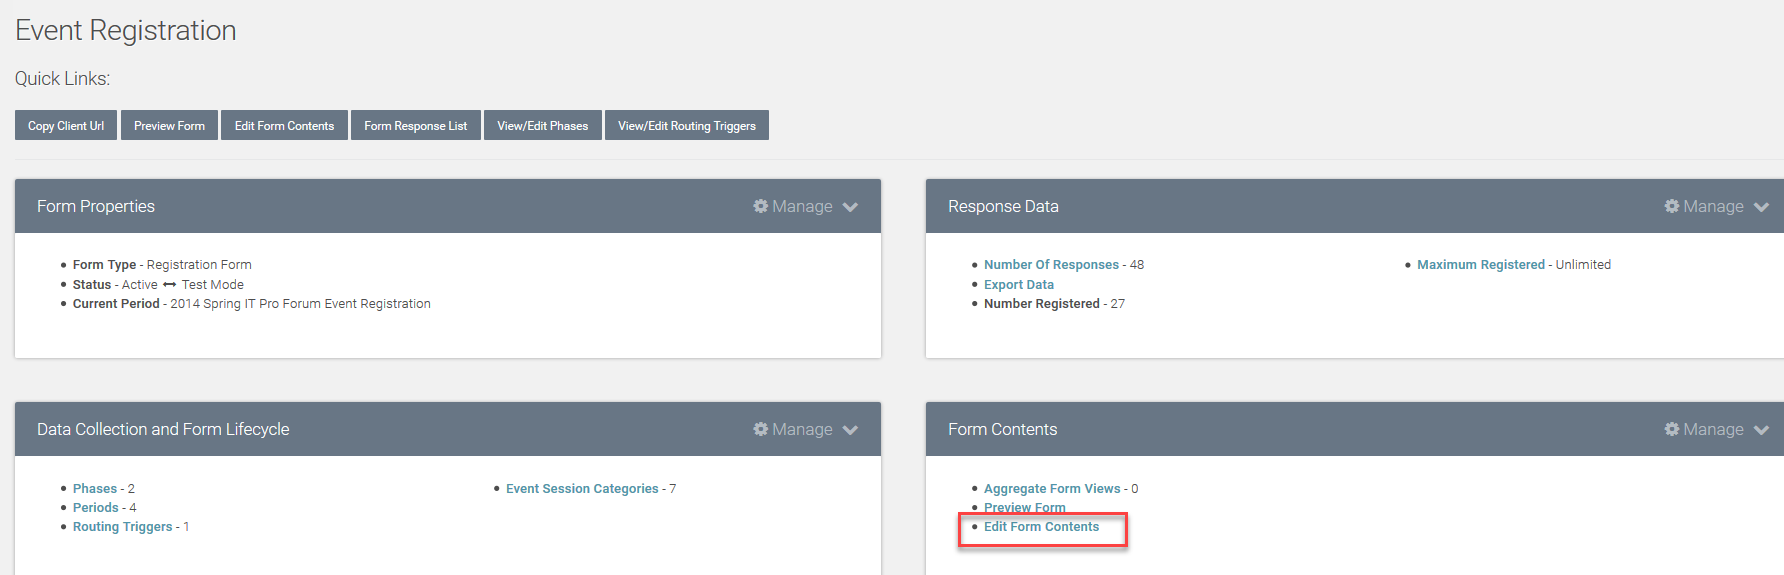 dashboard manage form contents